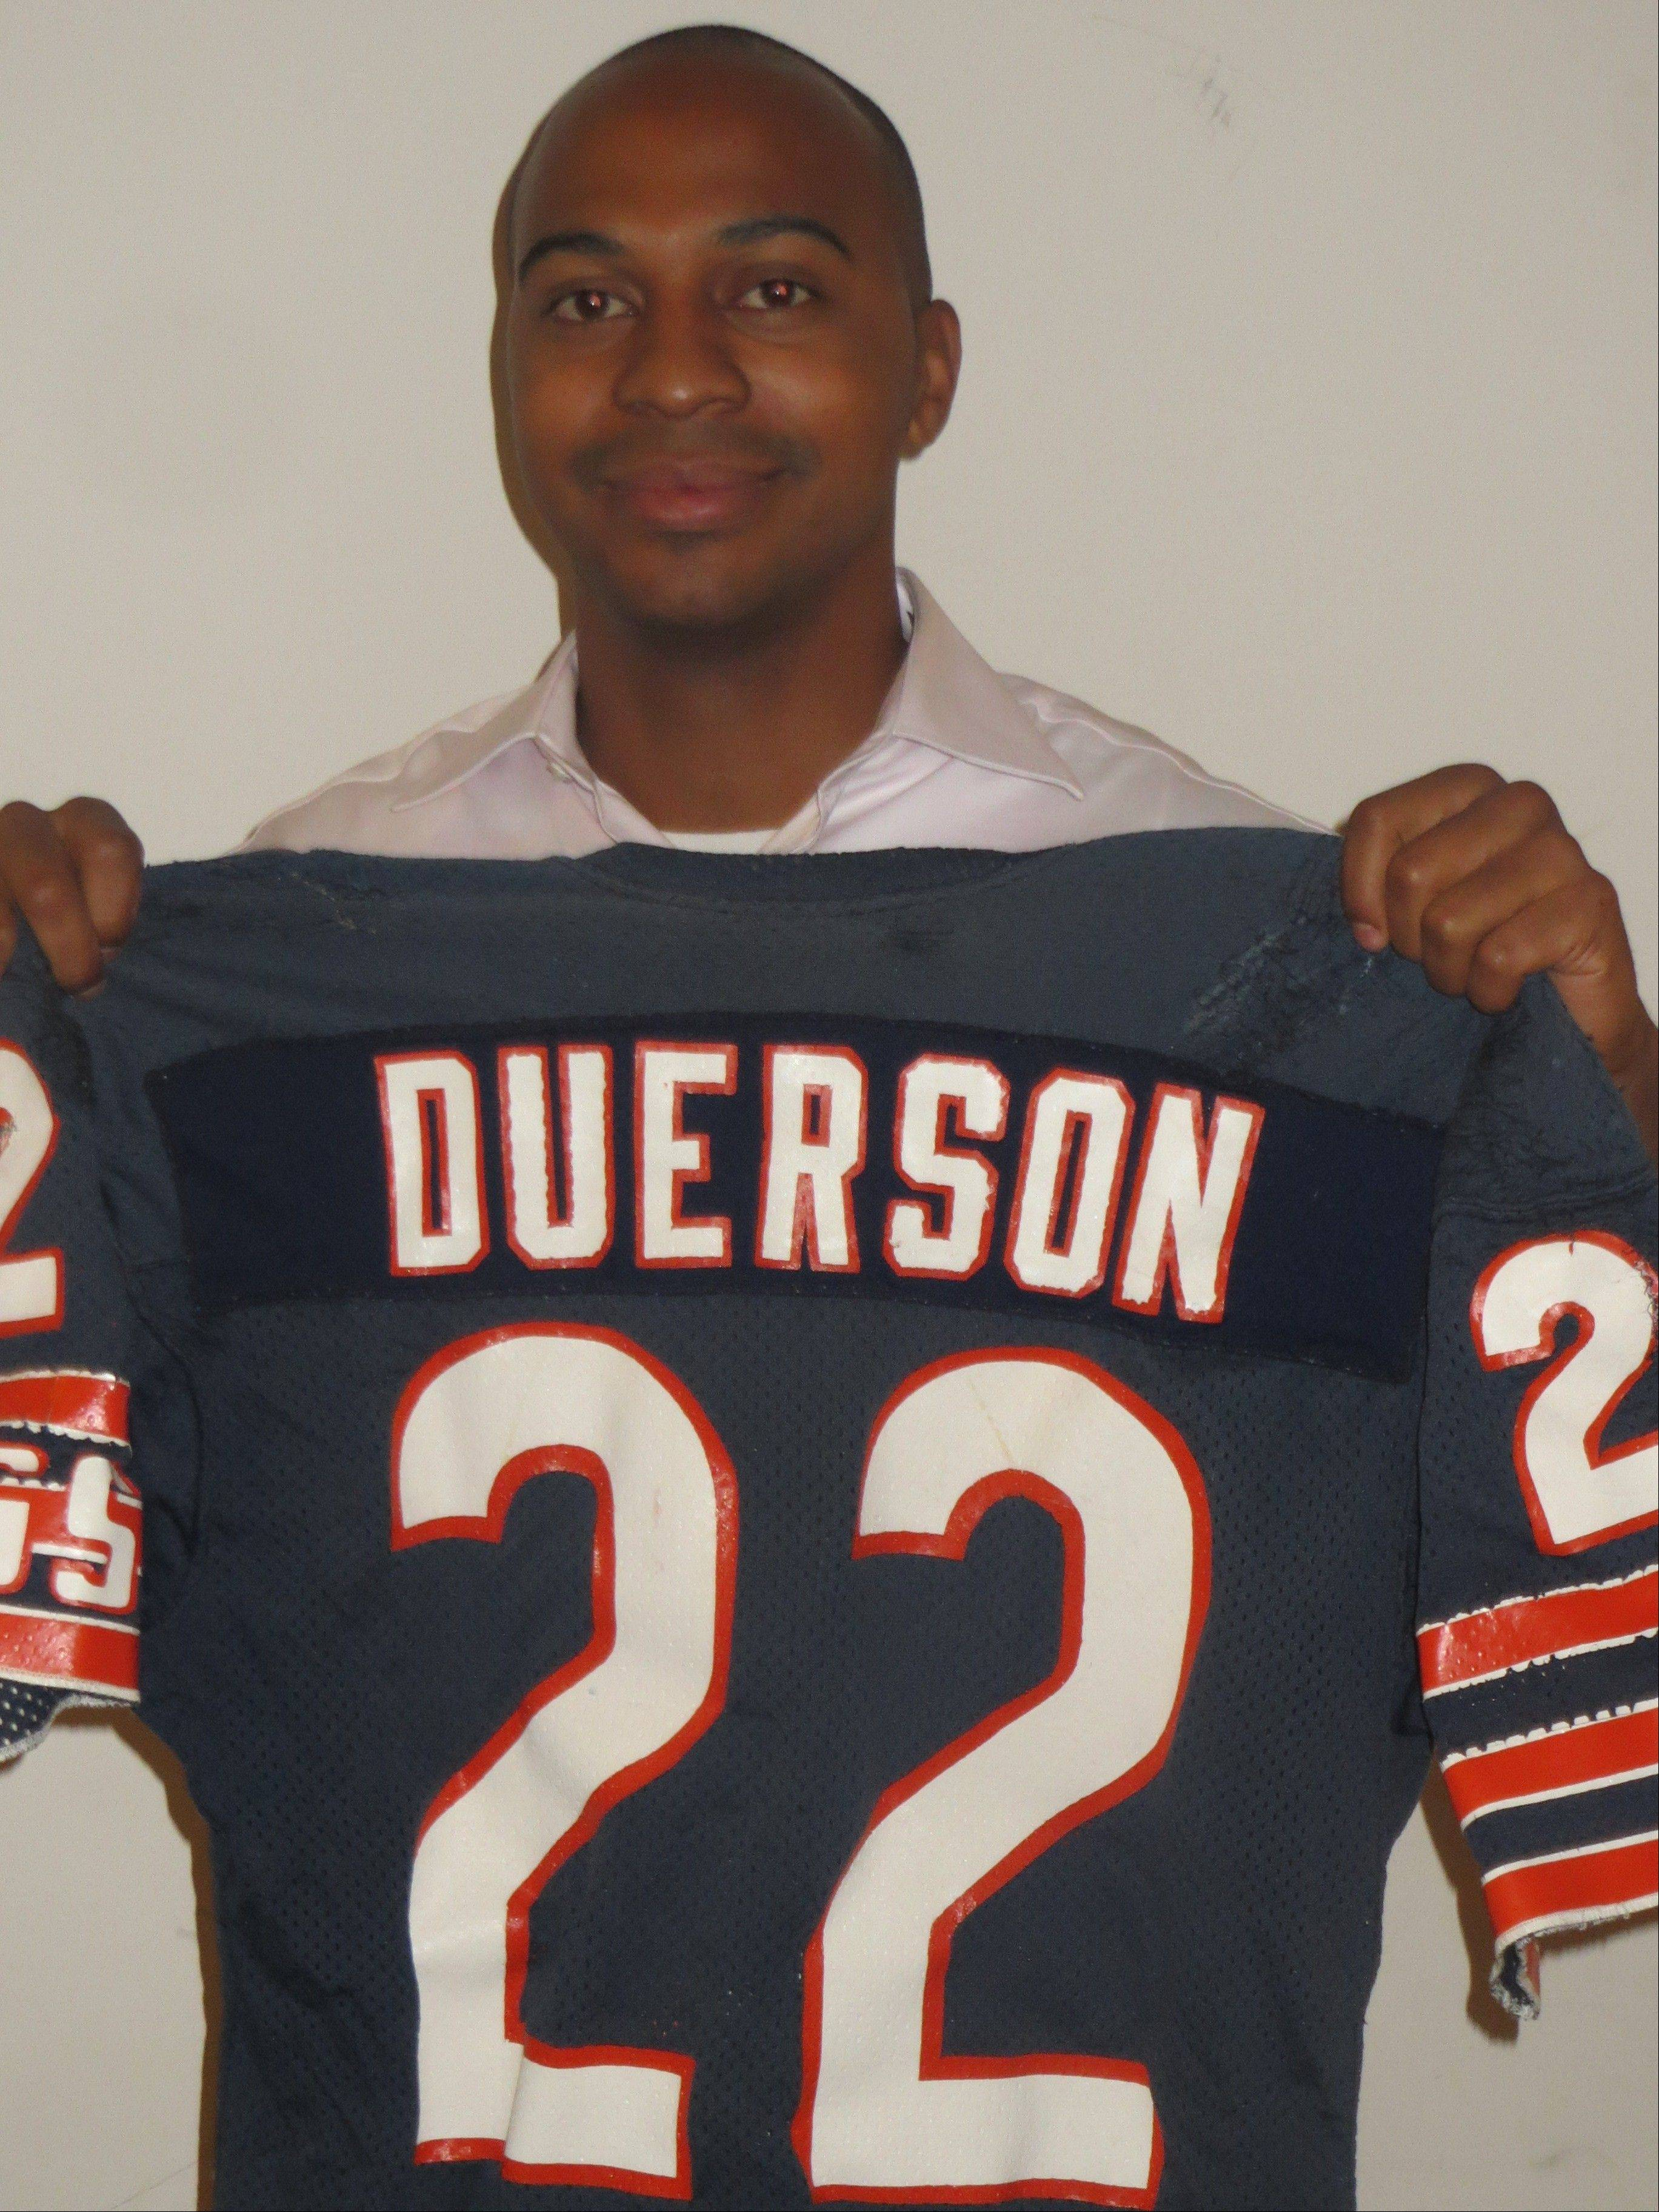 Holding a Bears jersey from his father's playing career, Tregg Duerson honors Dave Duerson's humanitarian legacy by becoming an advocate for suicide prevention.